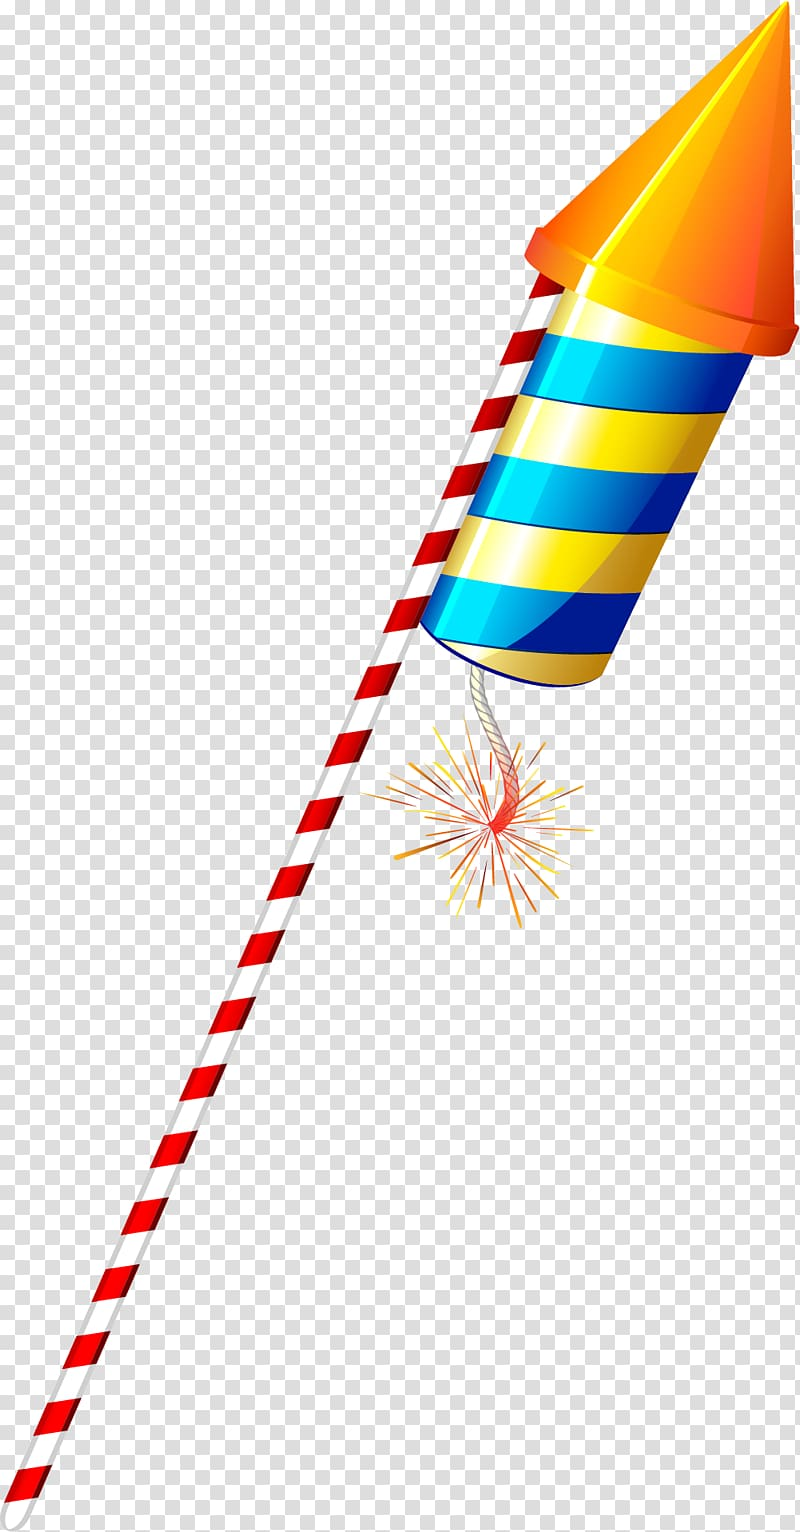 Yellow and blue striped firecracker, Diwali Firecracker.